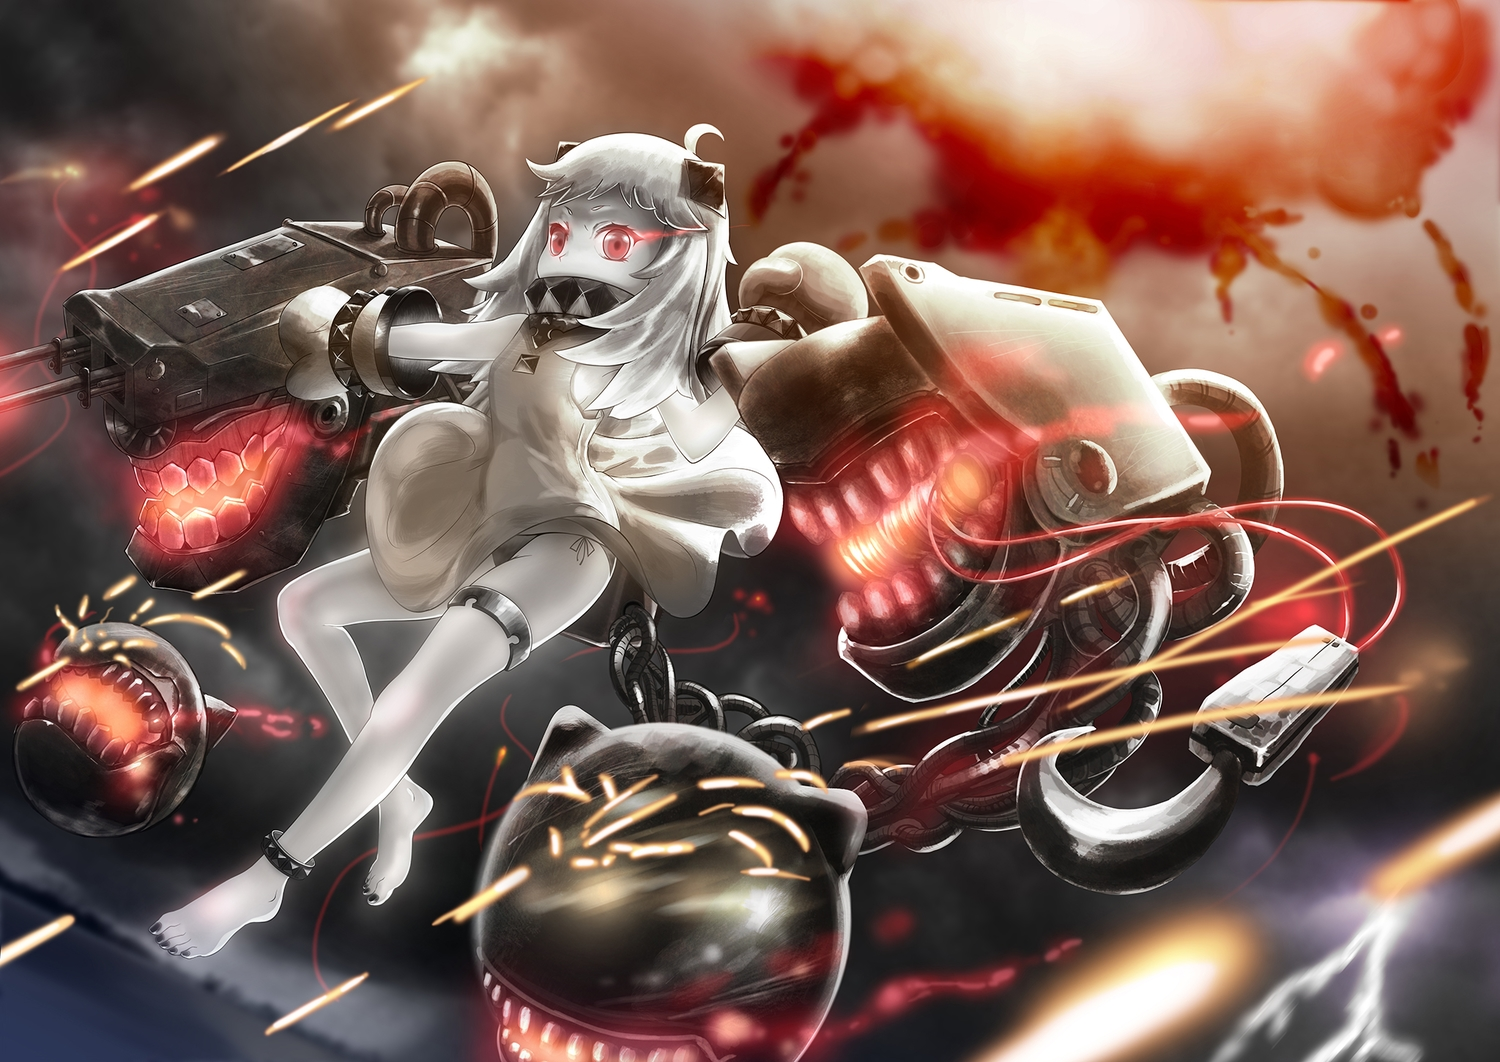 anthropomorphism barefoot brianchan.t.w chain dress garter gray_hair kantai_collection loli northern_ocean_hime panties red_eyes ribbons underwear